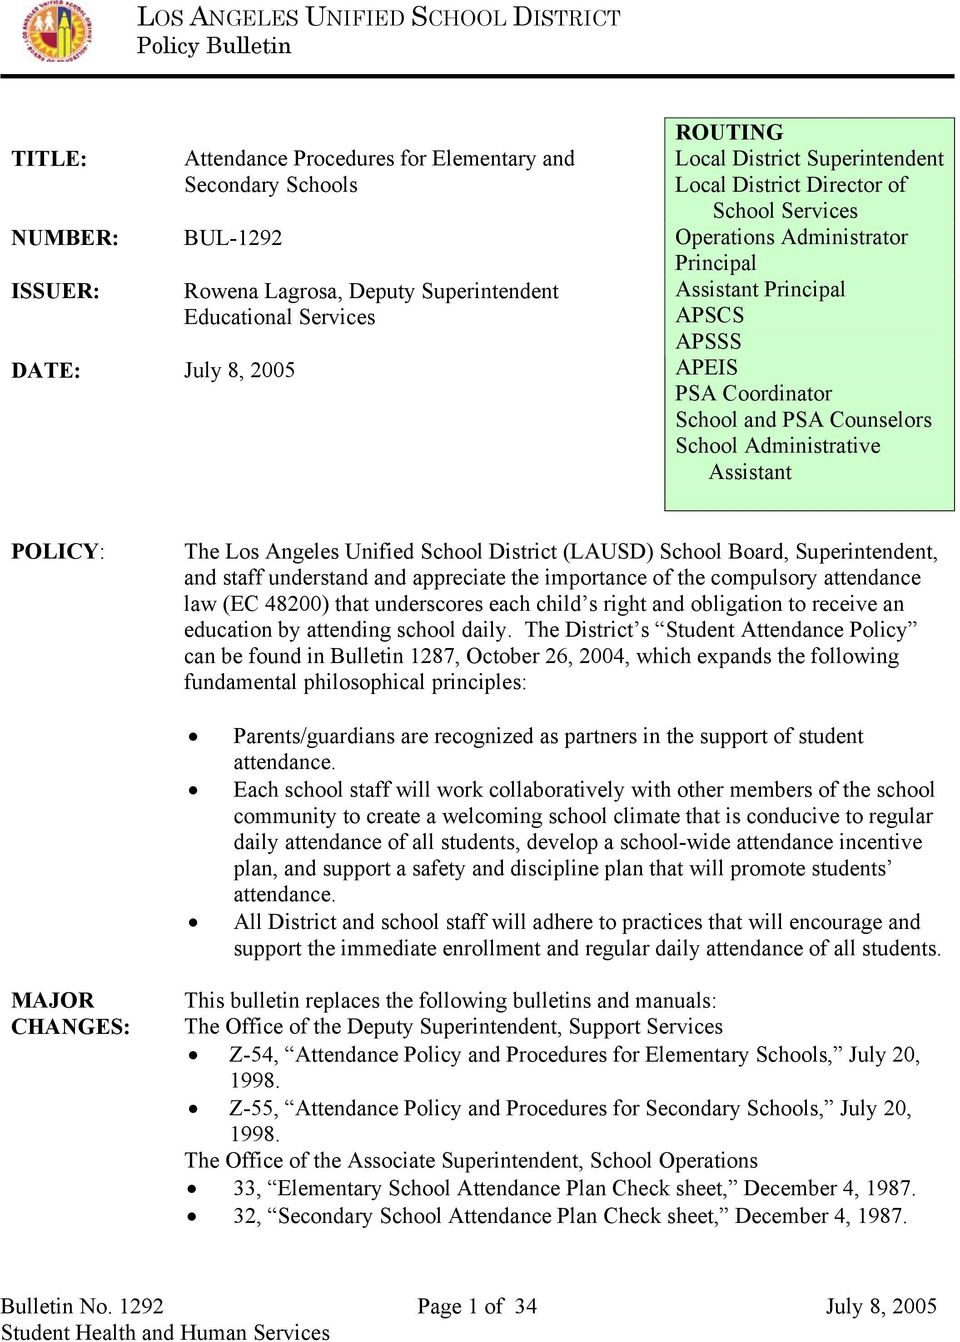 Administrative Assistant POLICY: The Los Angeles Unified School District (LAUSD) School Board, Superintendent, and staff understand and appreciate the importance of the compulsory attendance law (EC